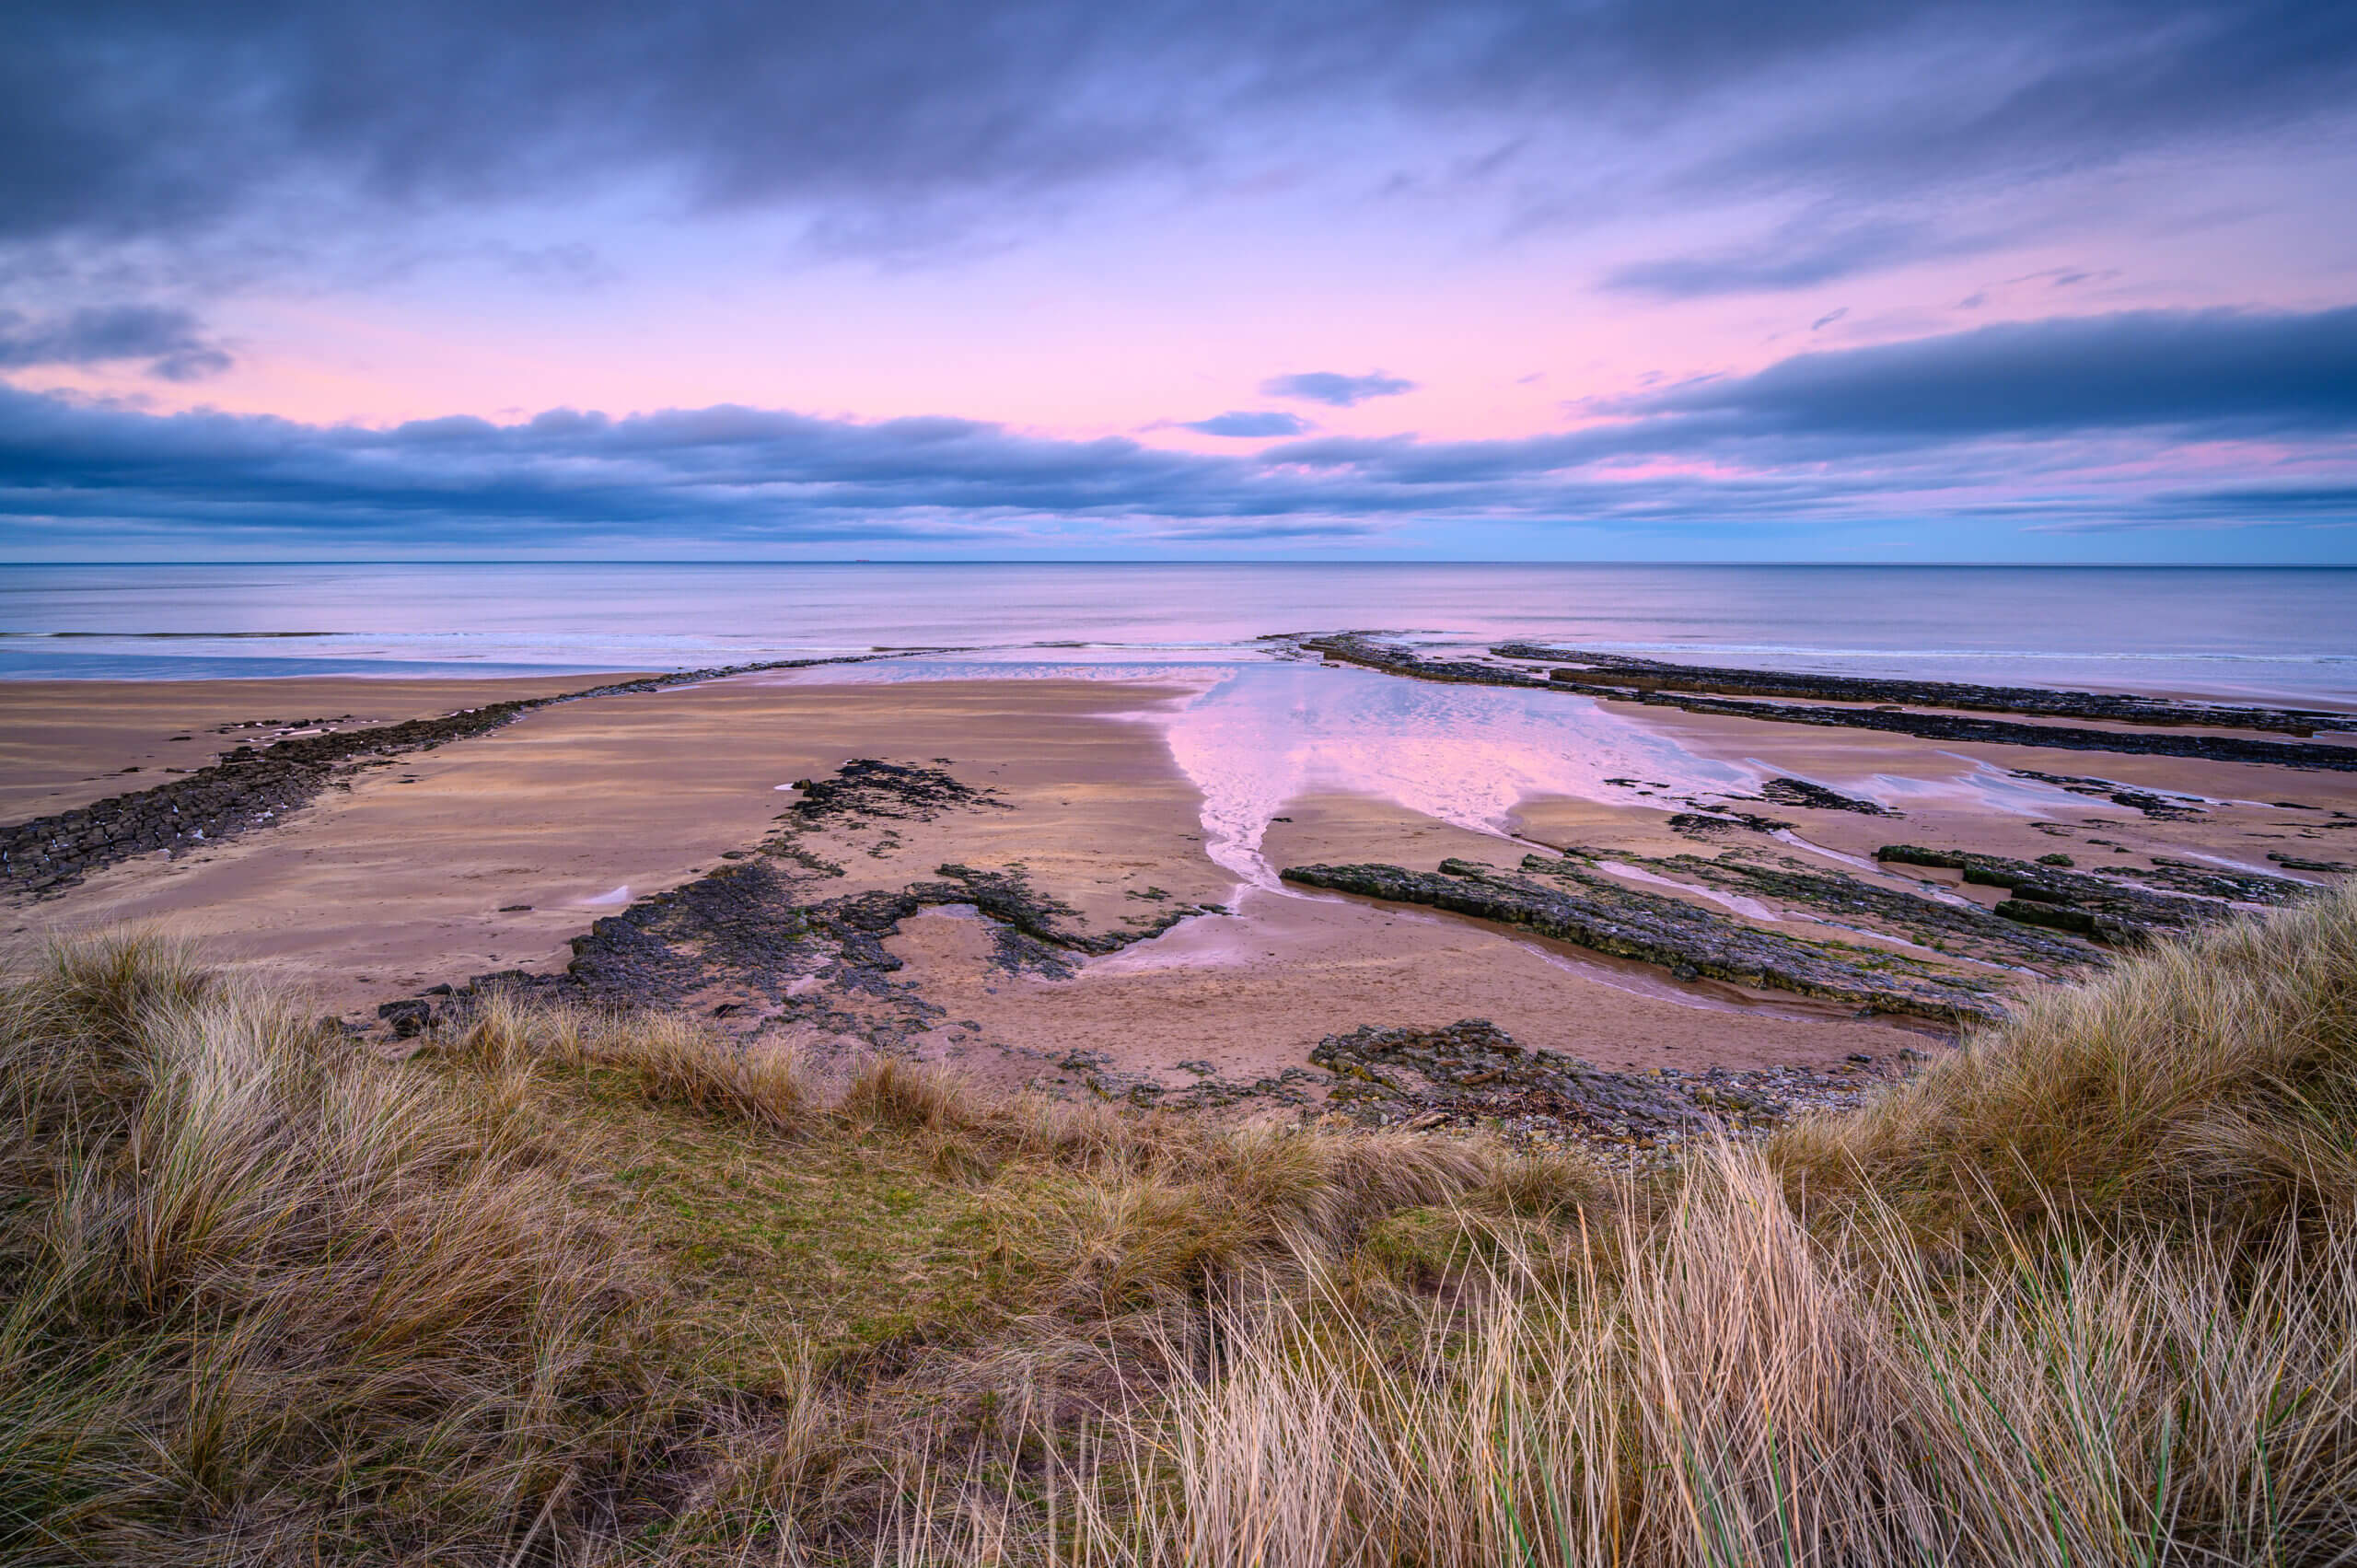 Cocklawburn is a rural beach within Northumberland Coast Area of Outstanding Natural Beauty (AONB), located just south of Berwick-upon-Tweed and is popular with families and dog walkers